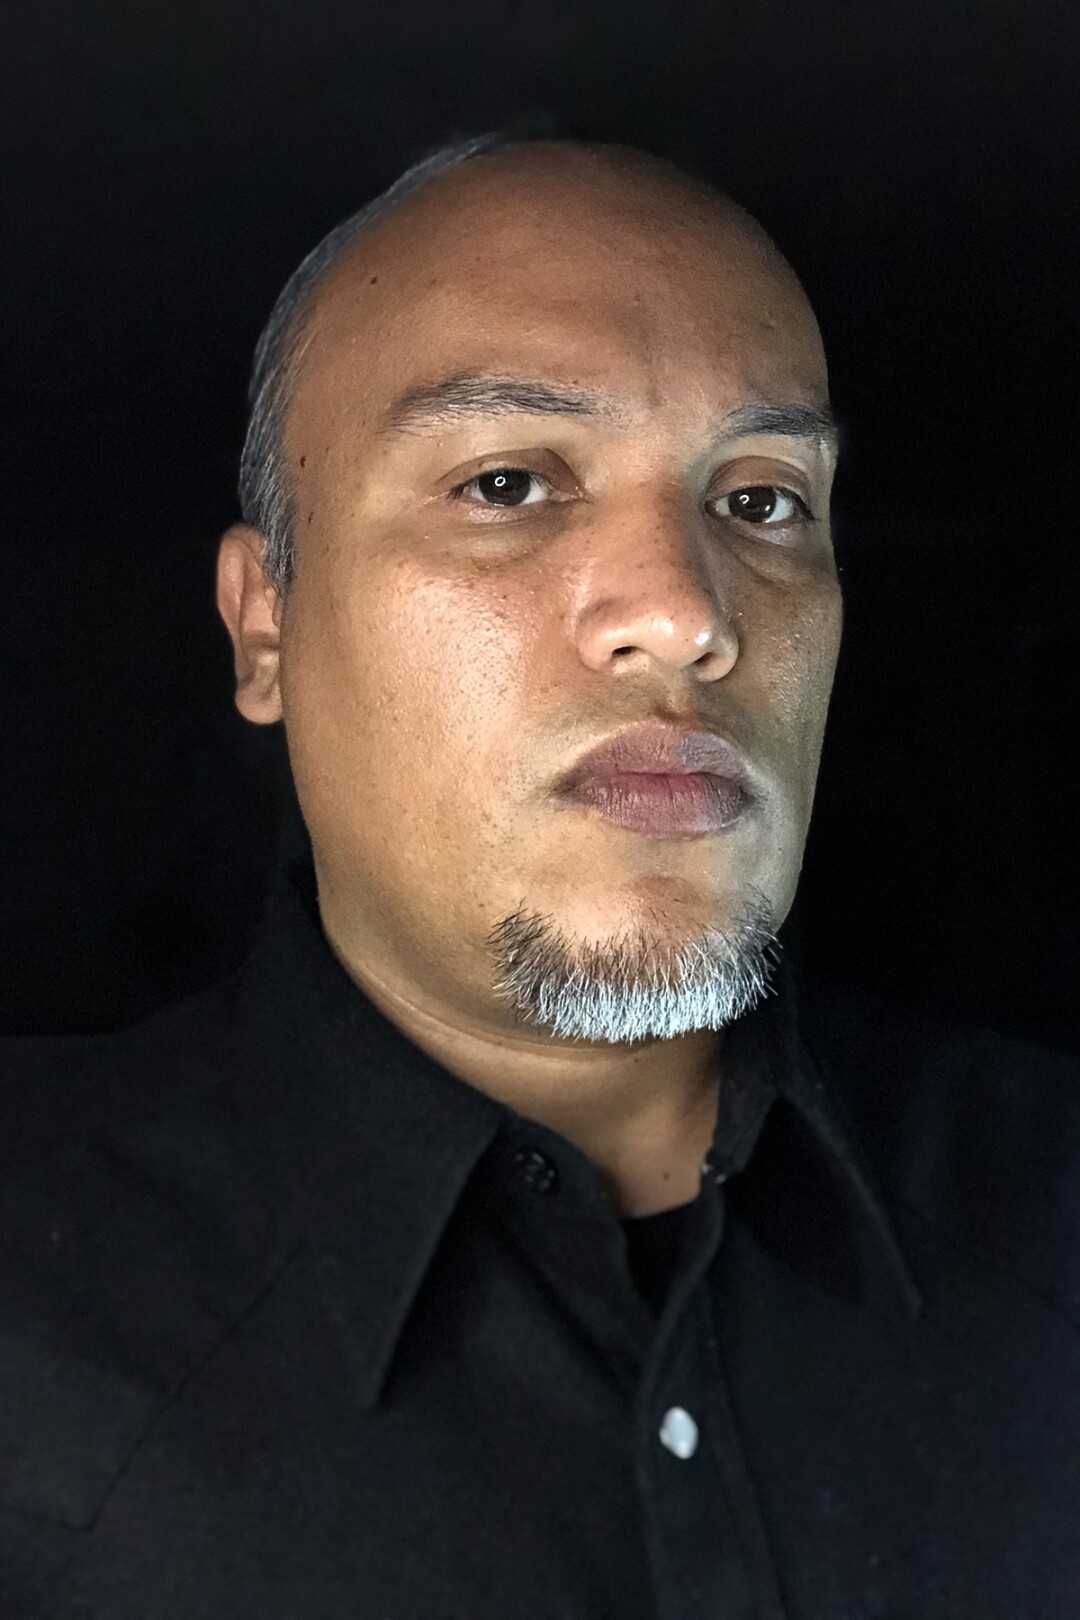 A portrait of Joel Garcia against a black background.